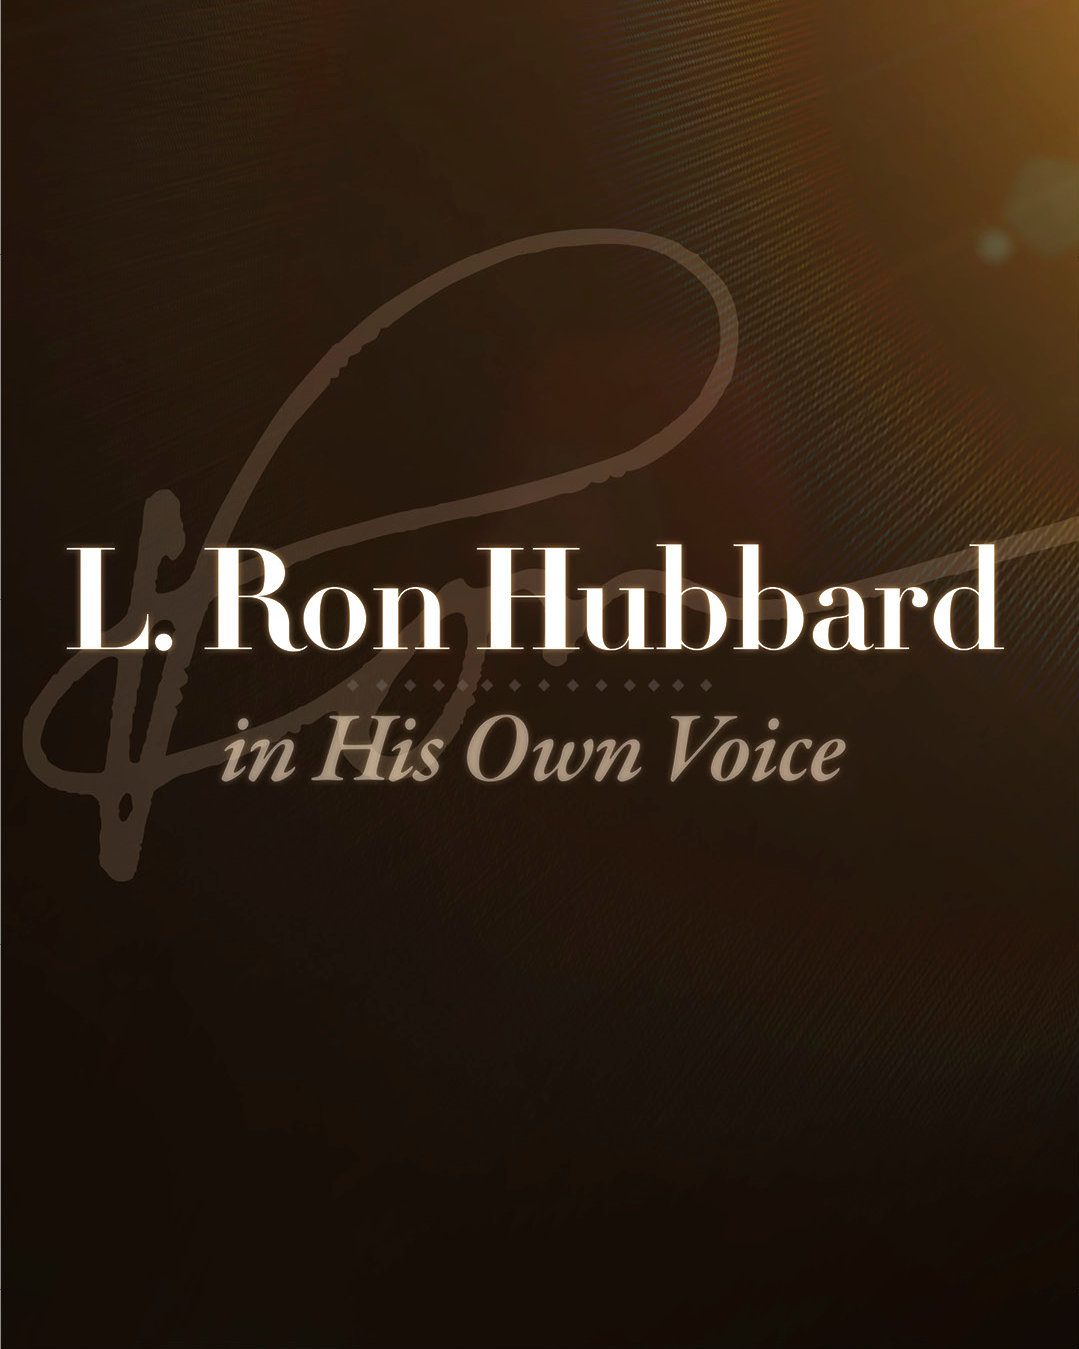 L. Ron Hubbard in His Own Voice